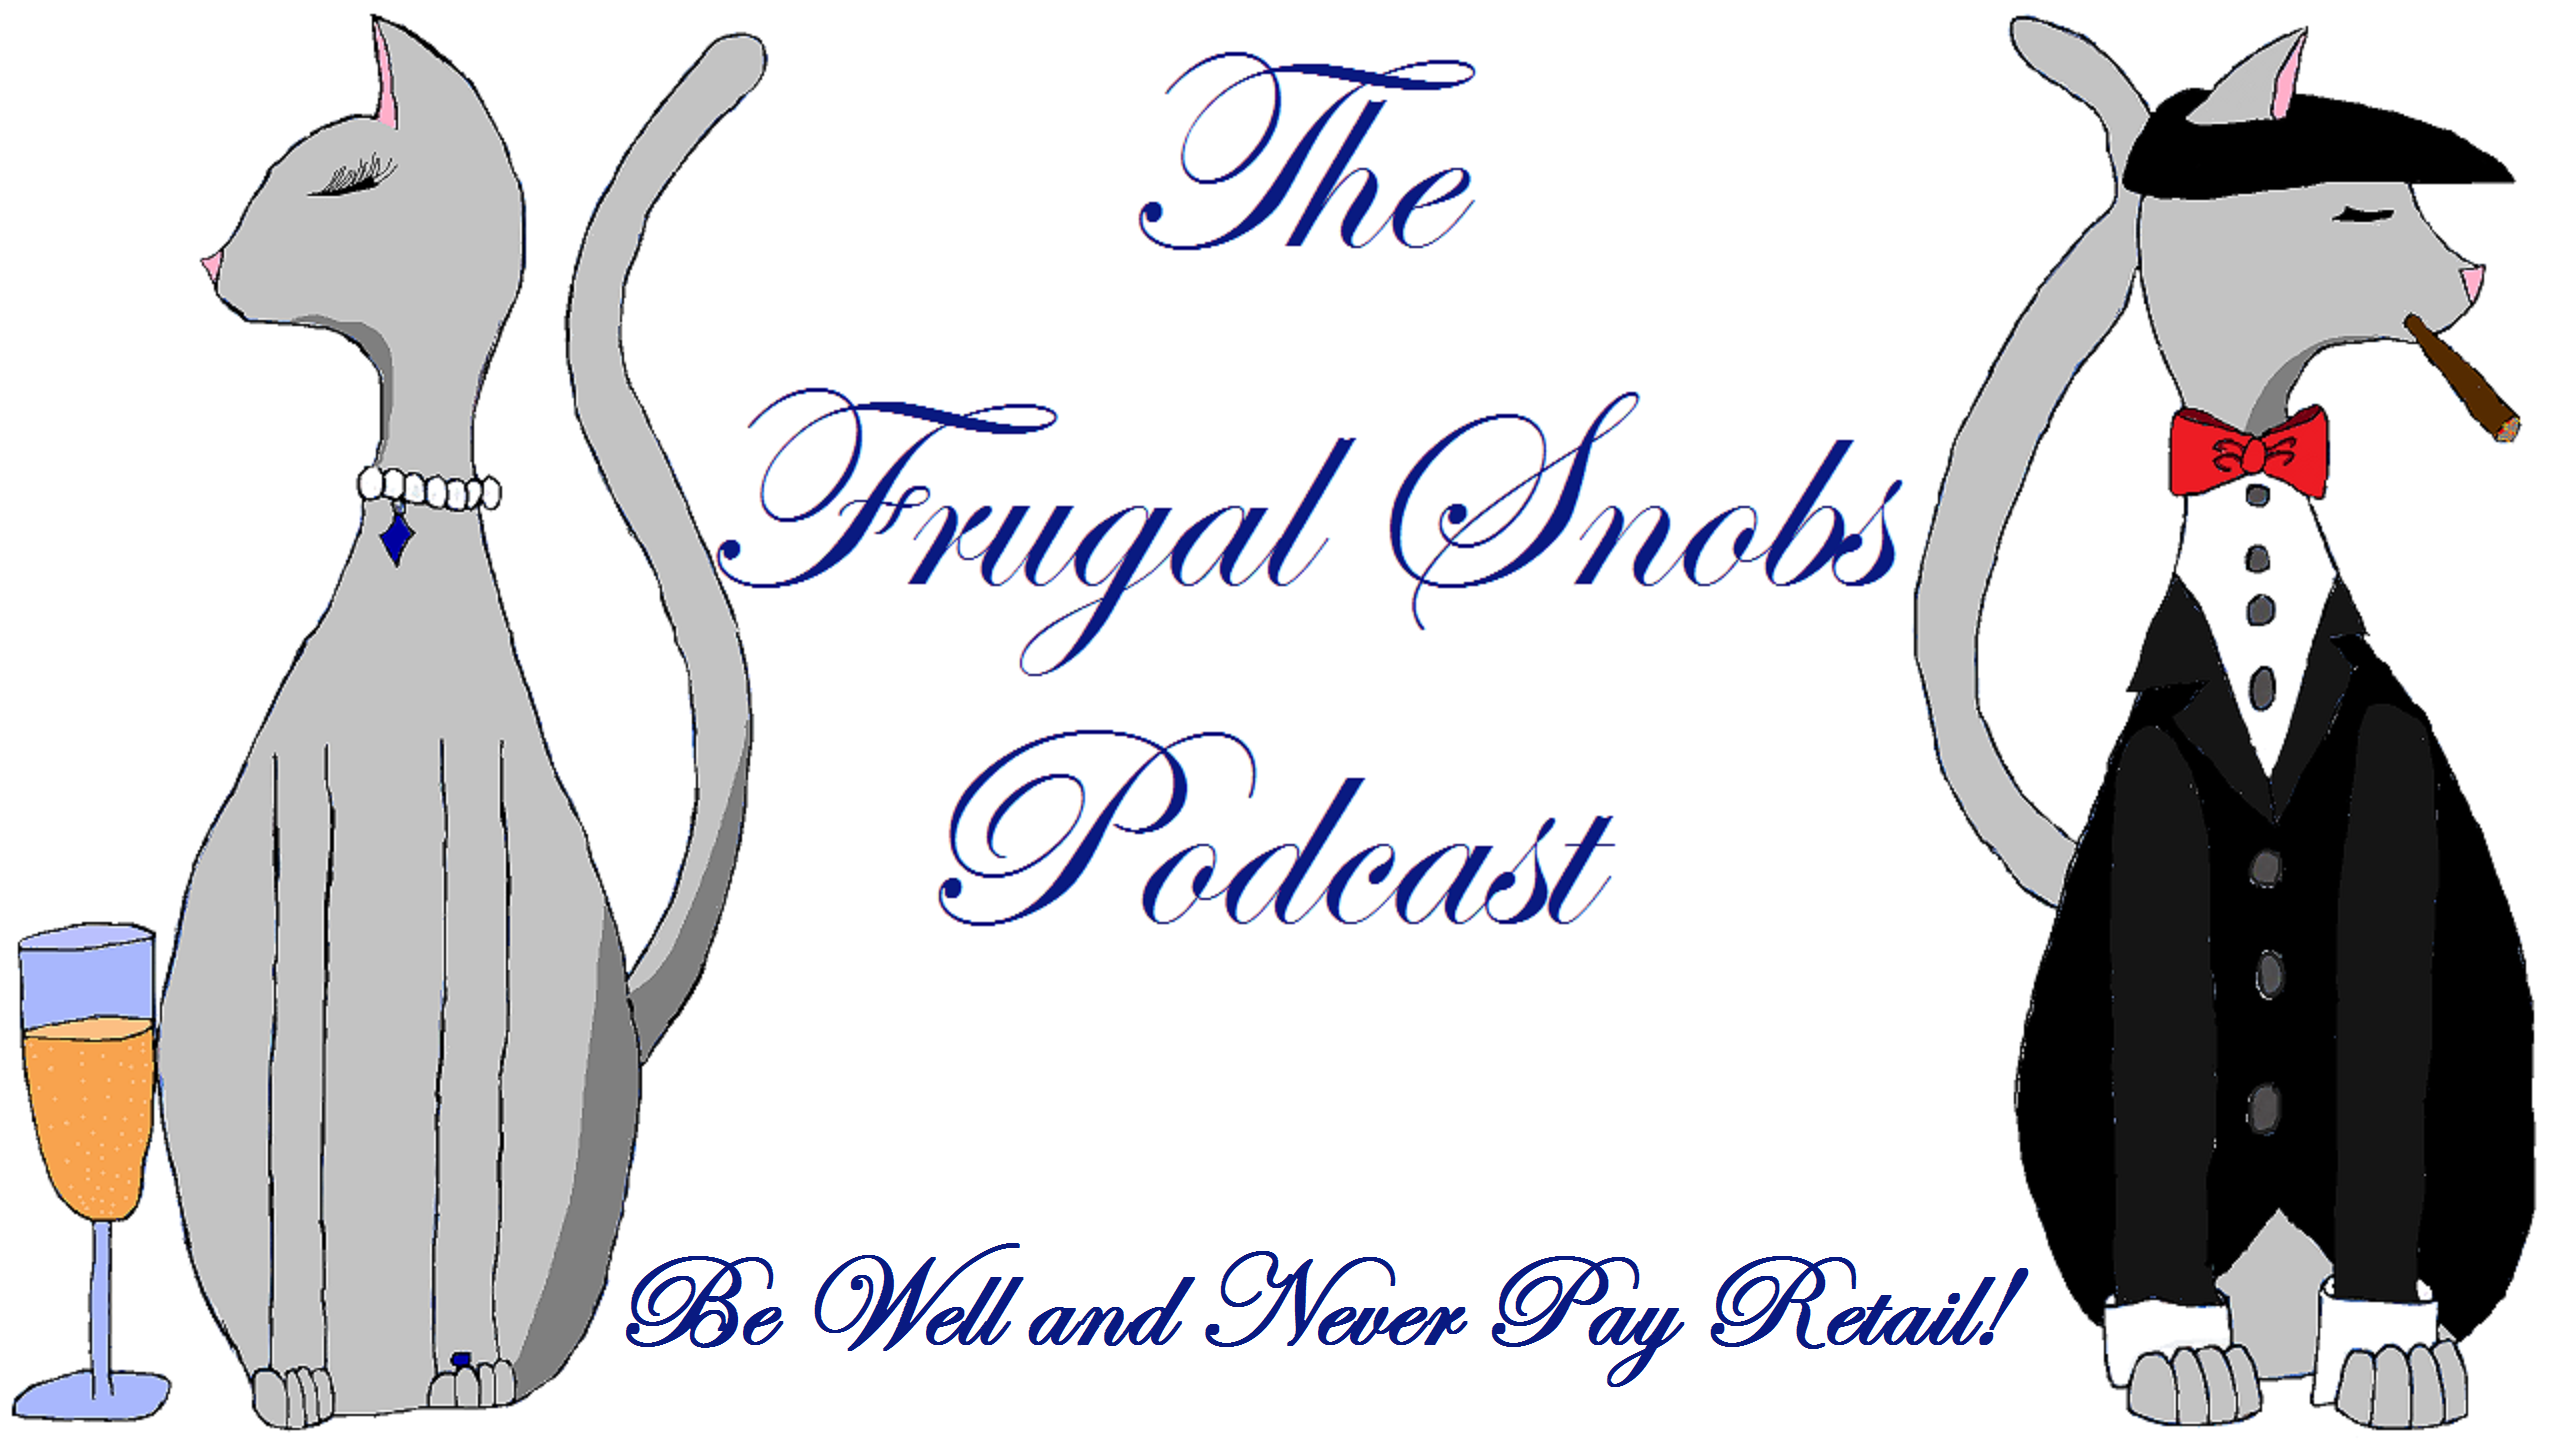 The Frugal Snobs Podcast Logo